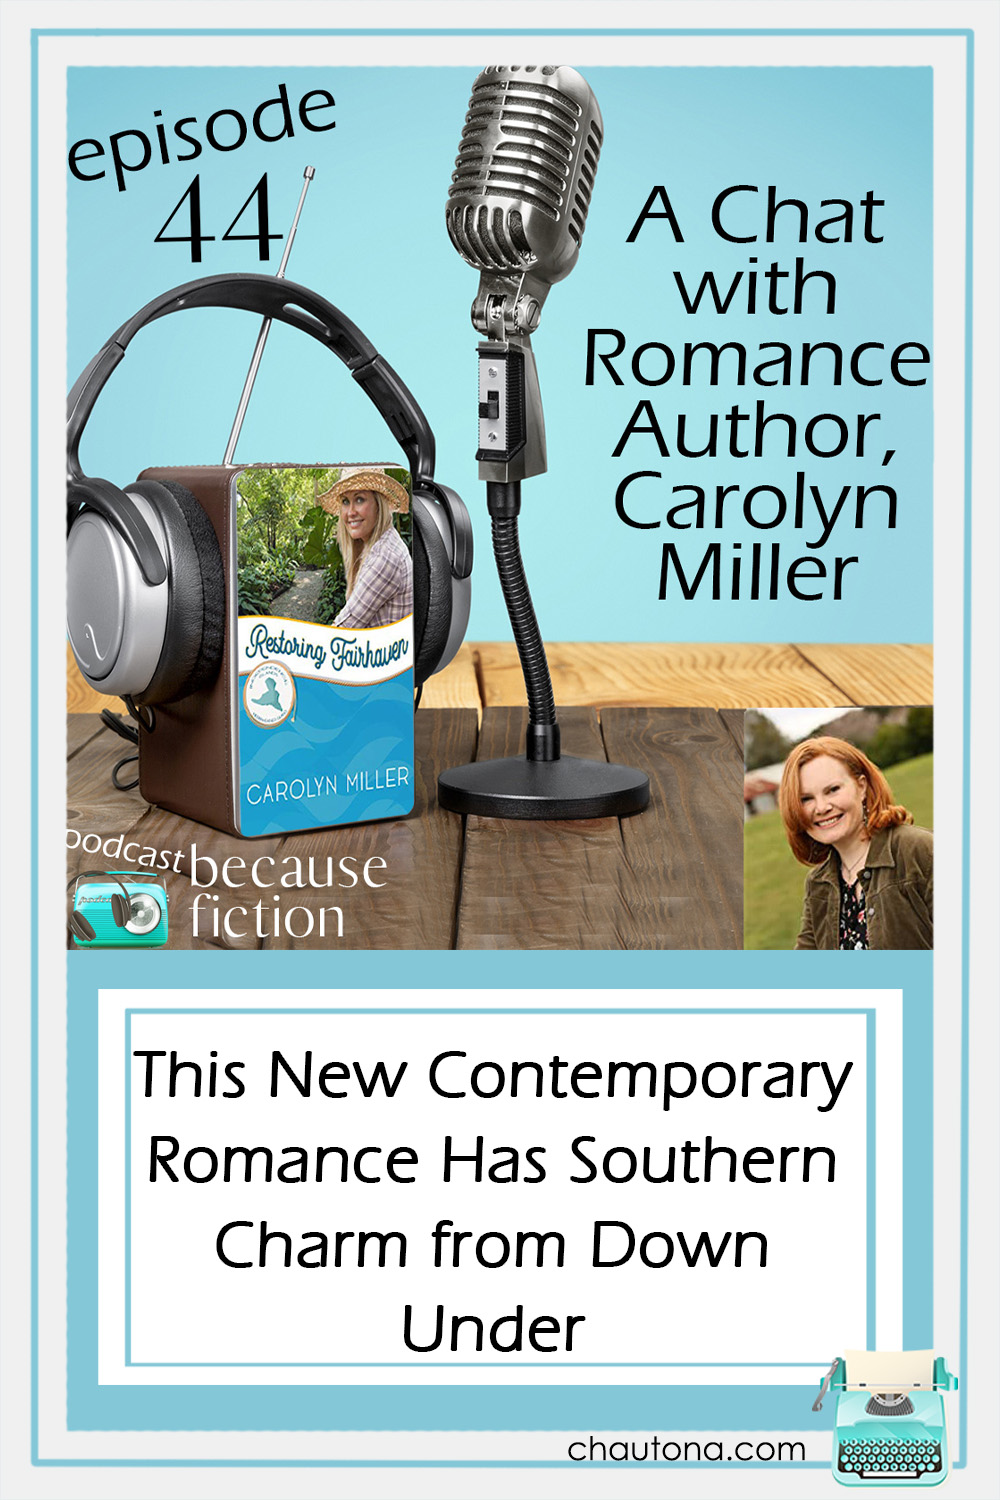 This week, I chatted with author, Carolyn Miller about her Regency novels, her Independence Islands books, and her upcoming contemporary romance series! via @chautonahavig